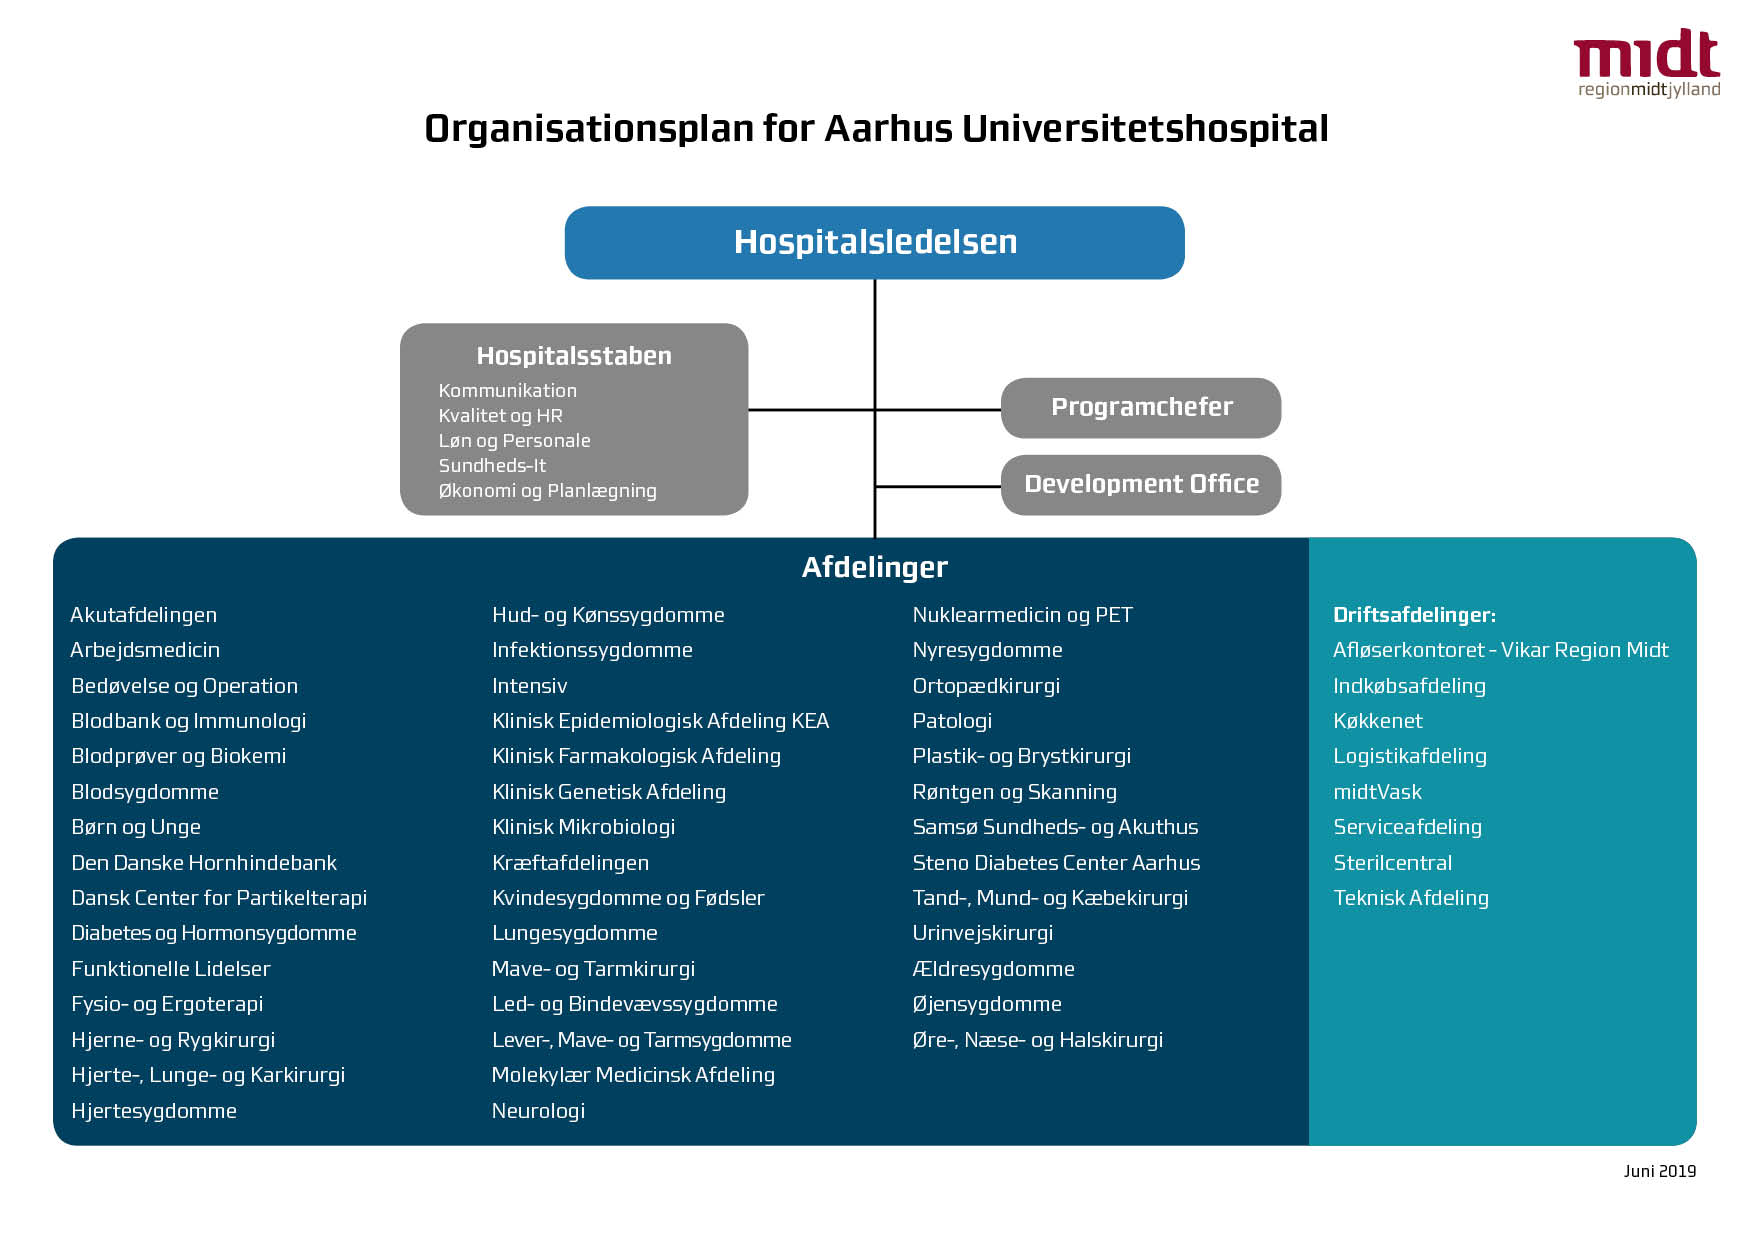 Organisationsplan for AUH februar 2019.jpg